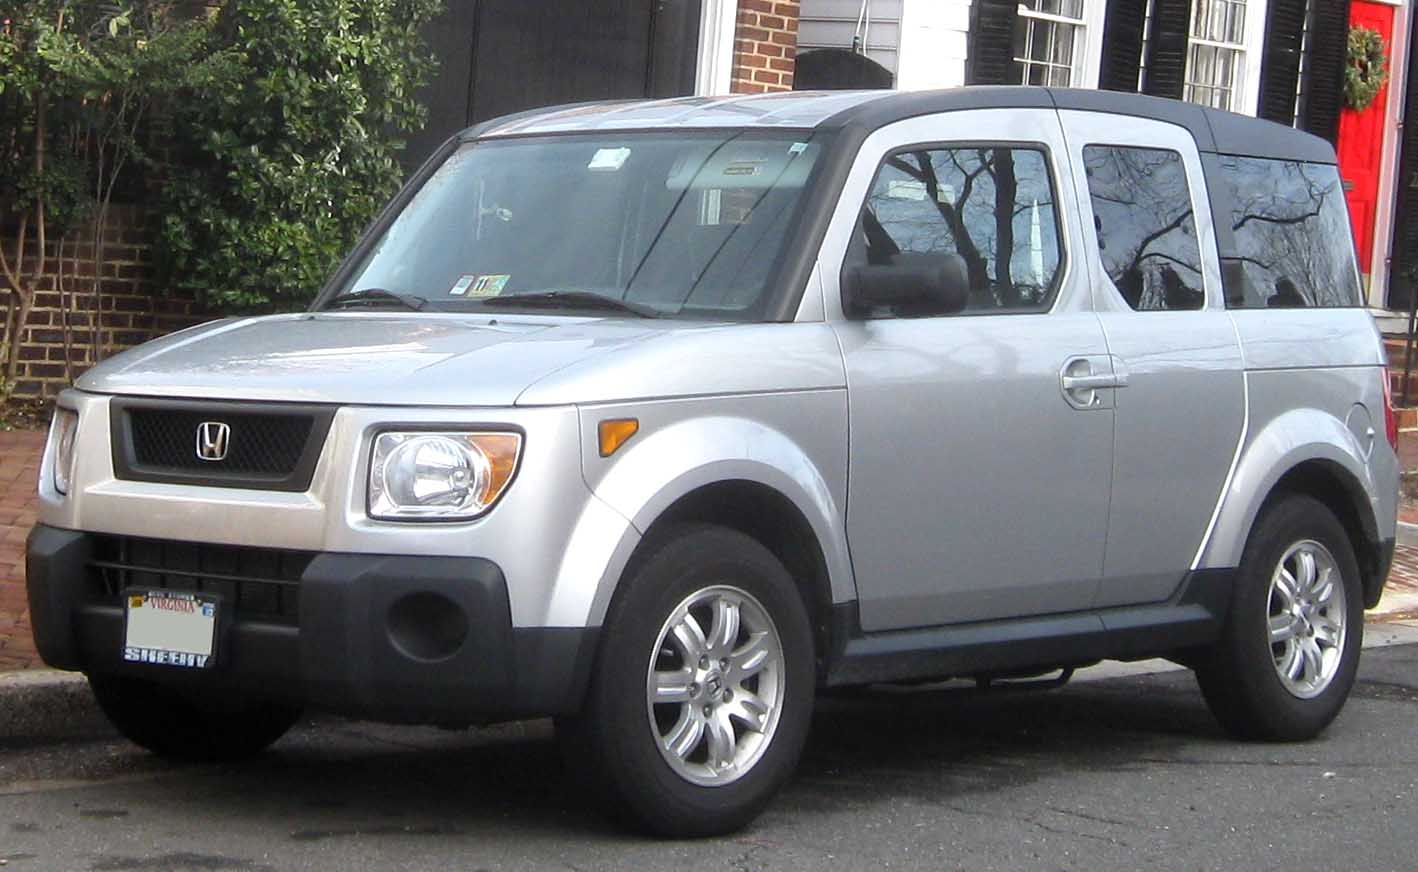 honda element ex-p-pic. 2